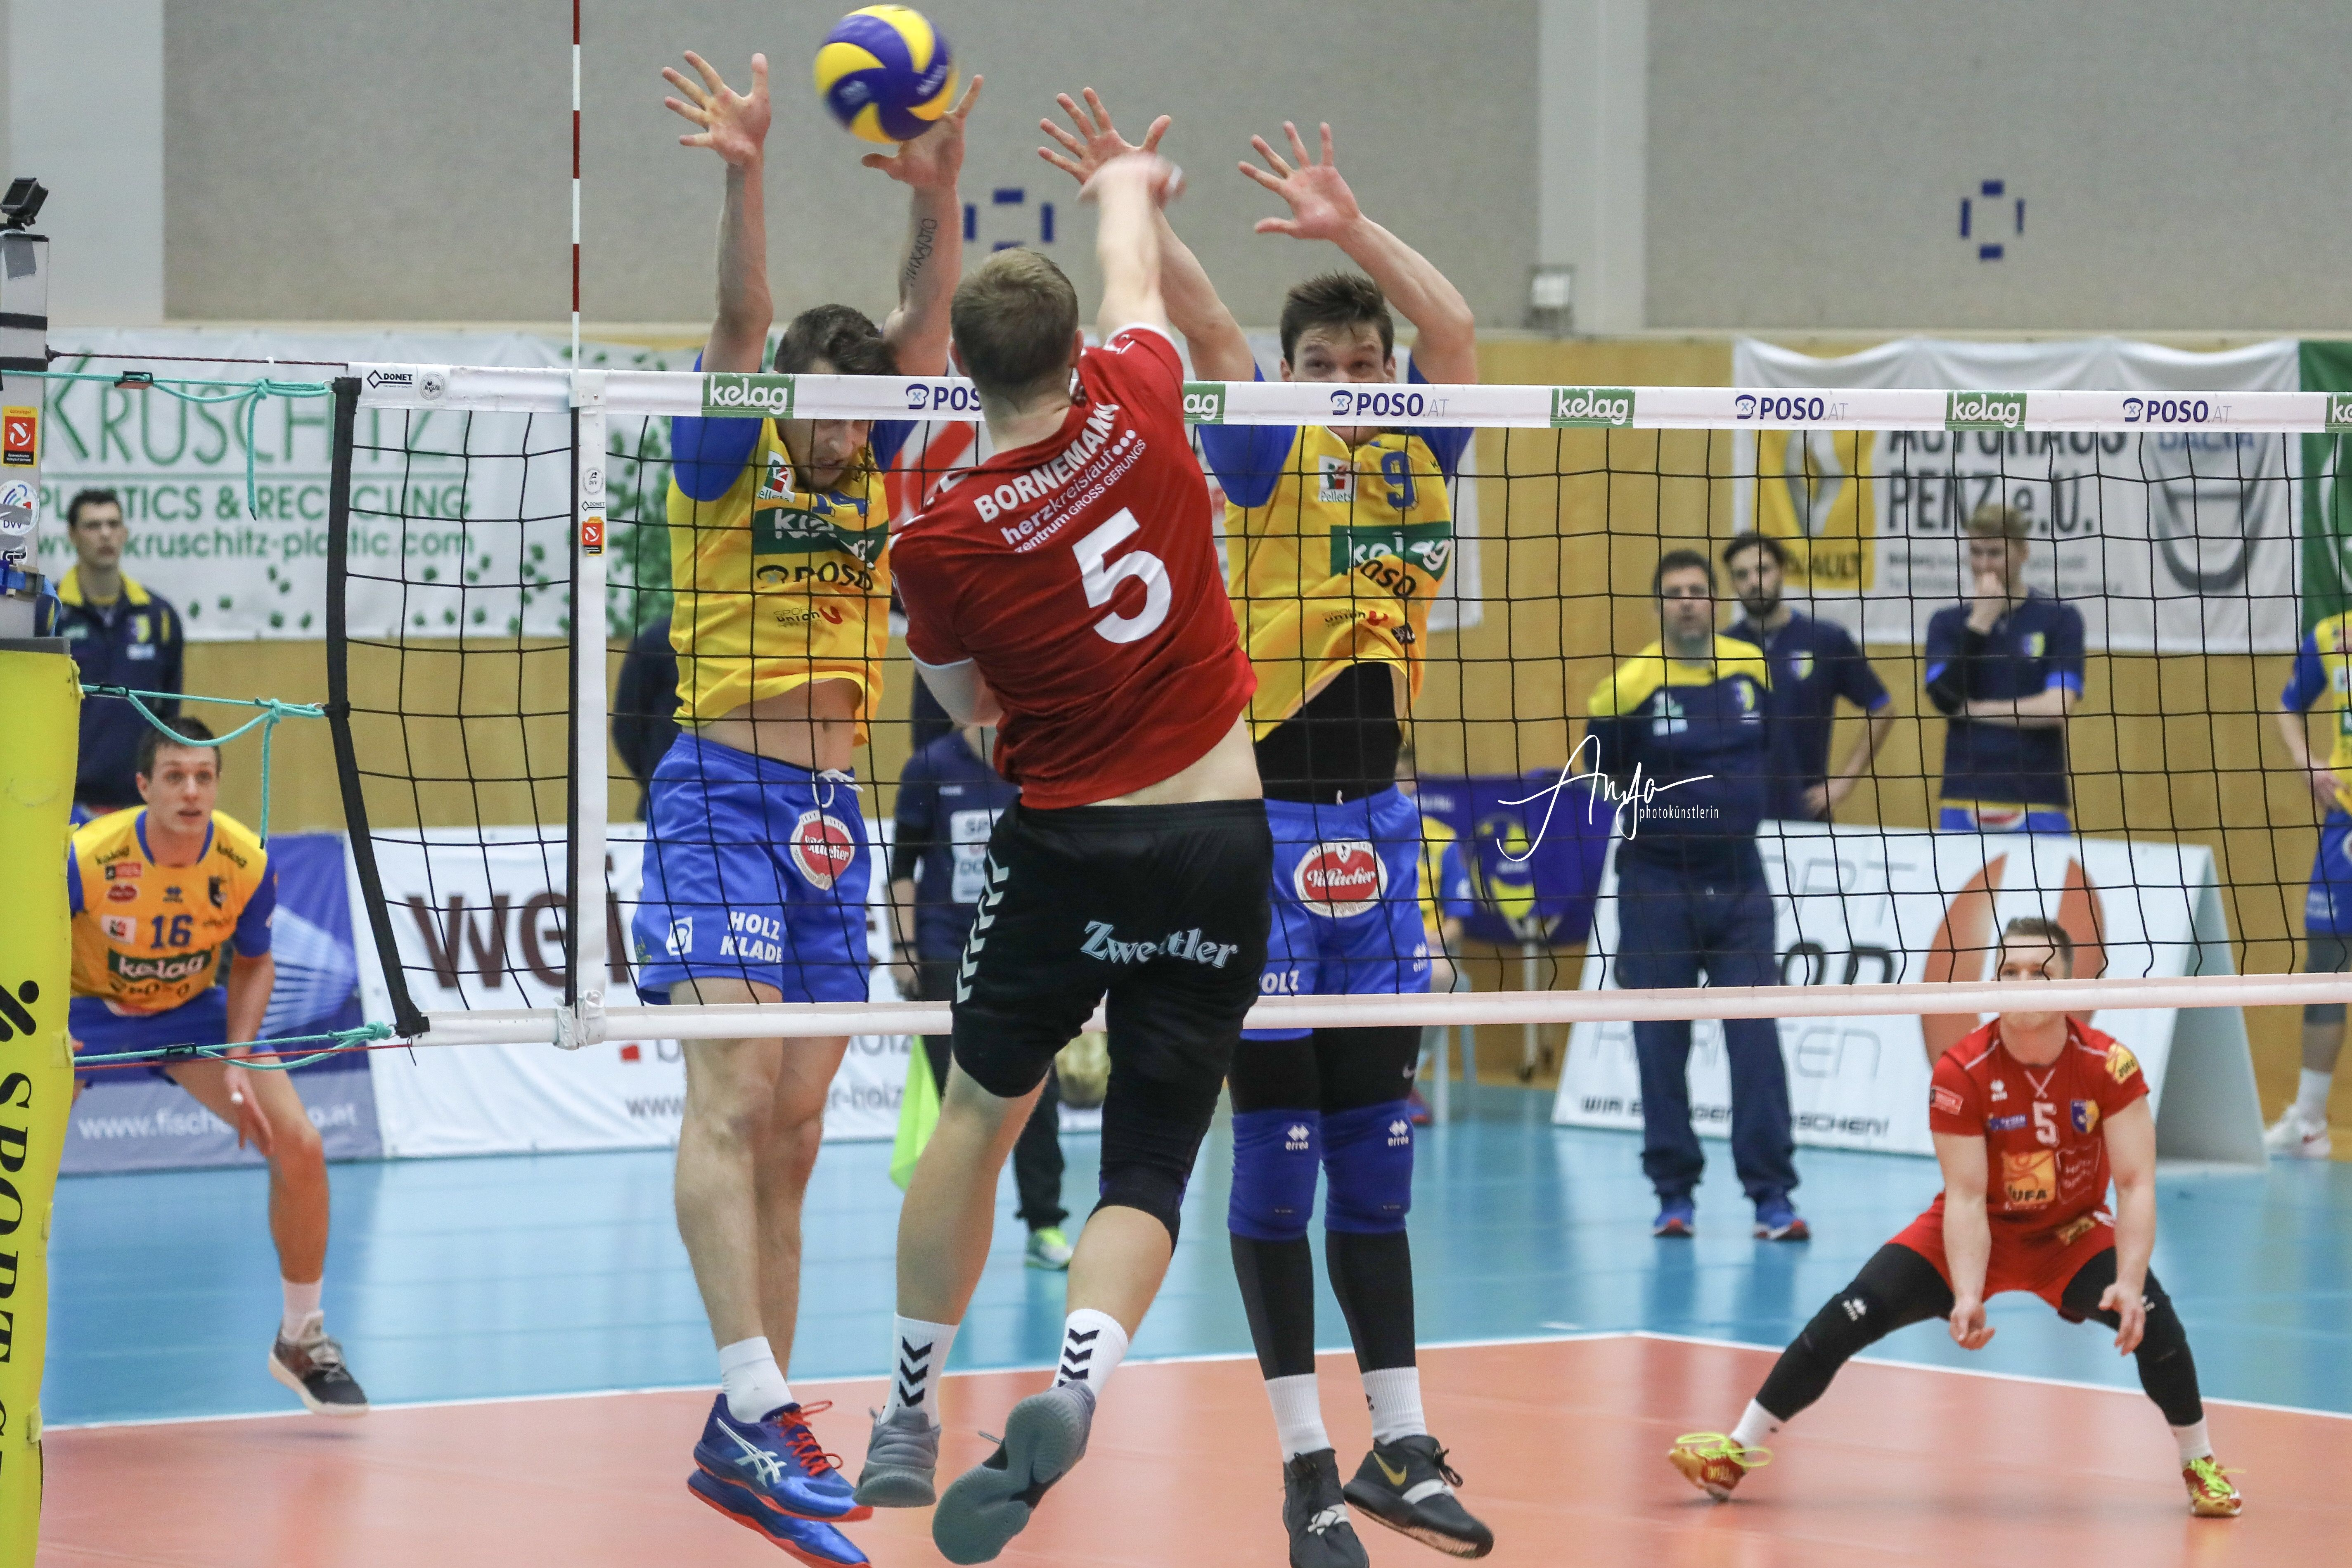 #Austria: Aich/Dob scored its 3rd victory against URW in final serie before the title.